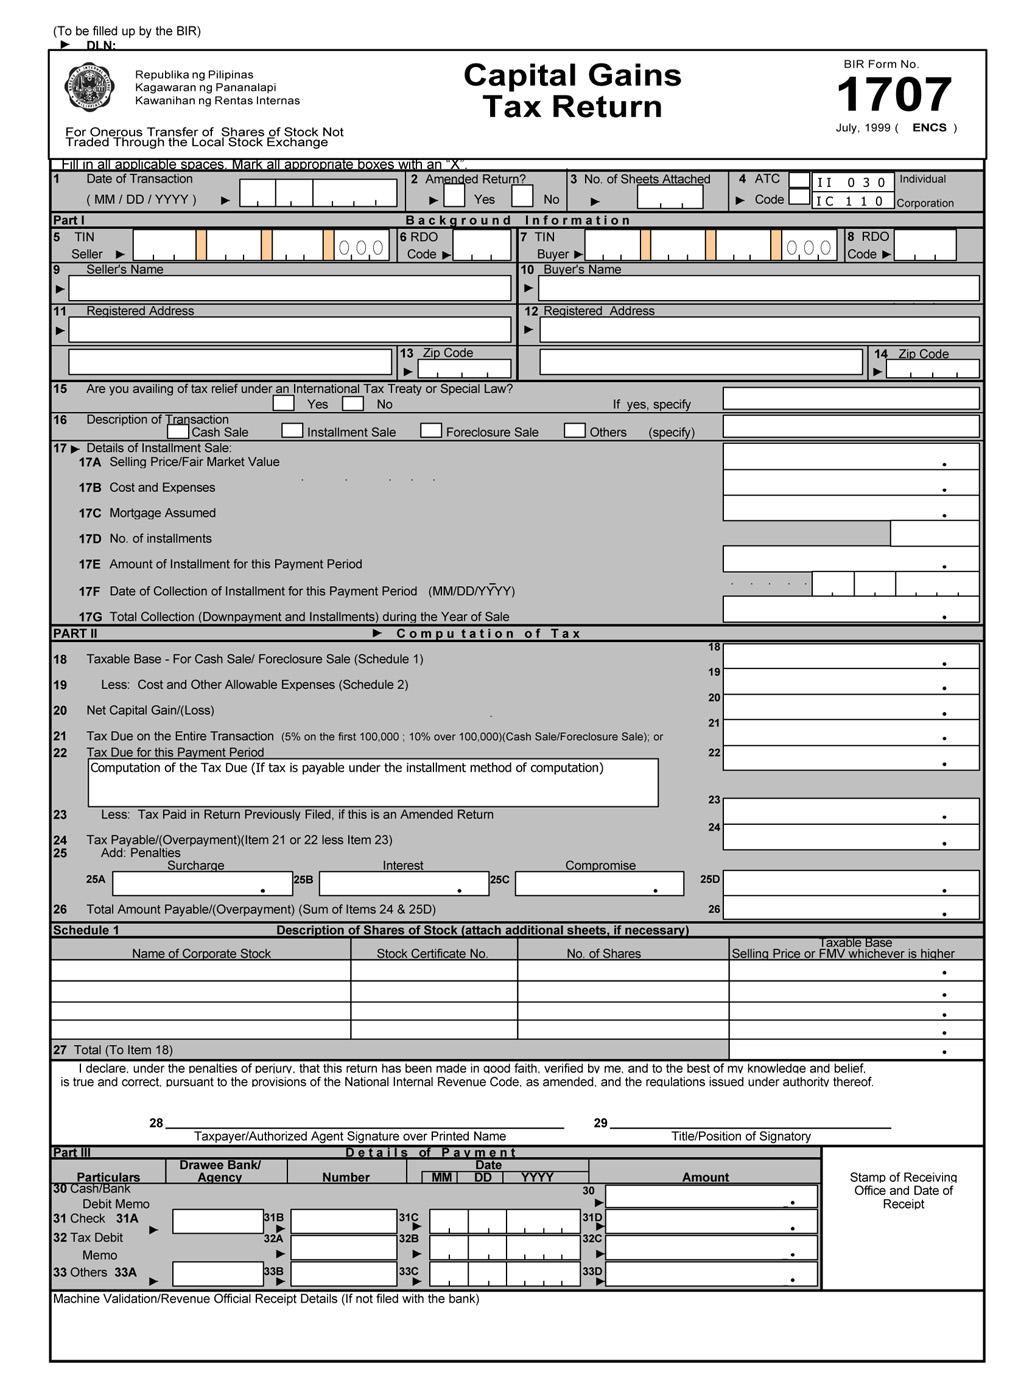 busapcom: BIR Form 1707 Download